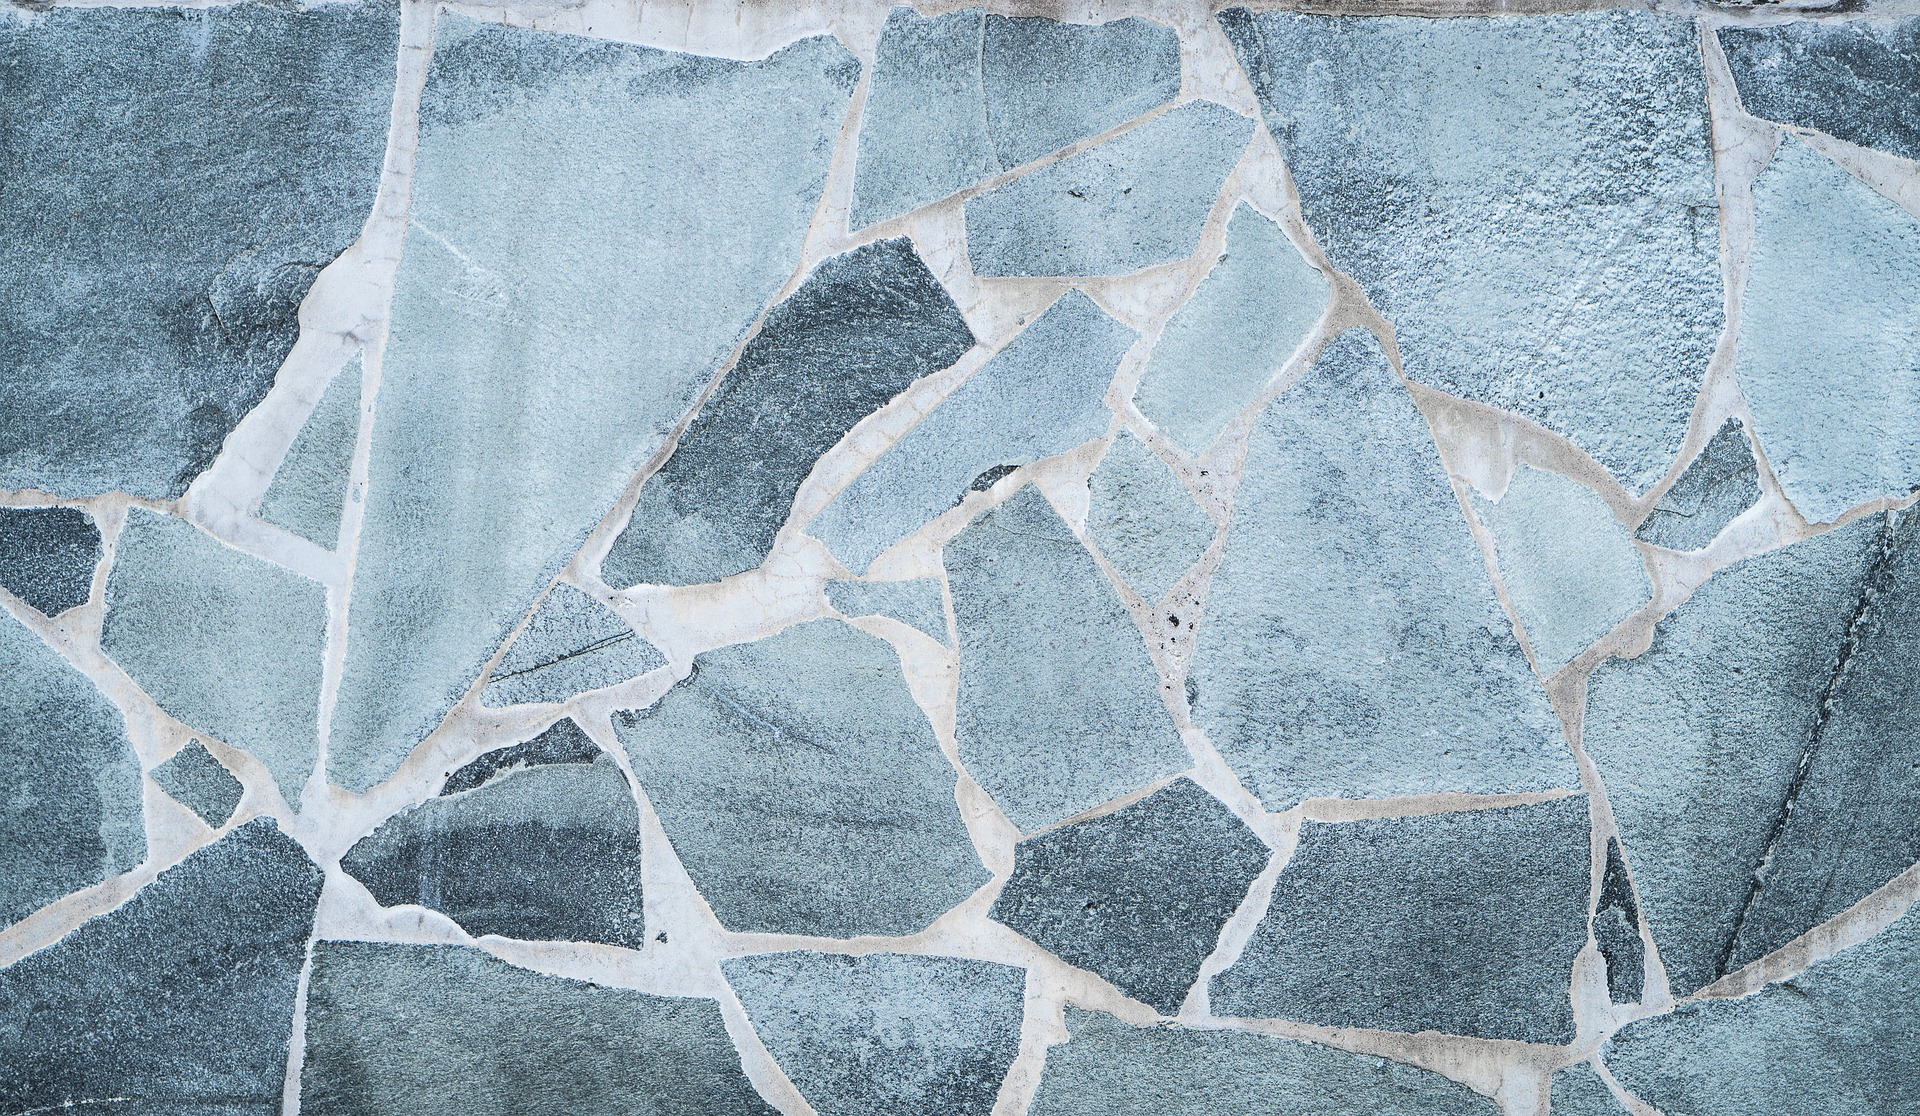 Marble Texture, Design, Grunge, Grungy, Marble, HQ Photo